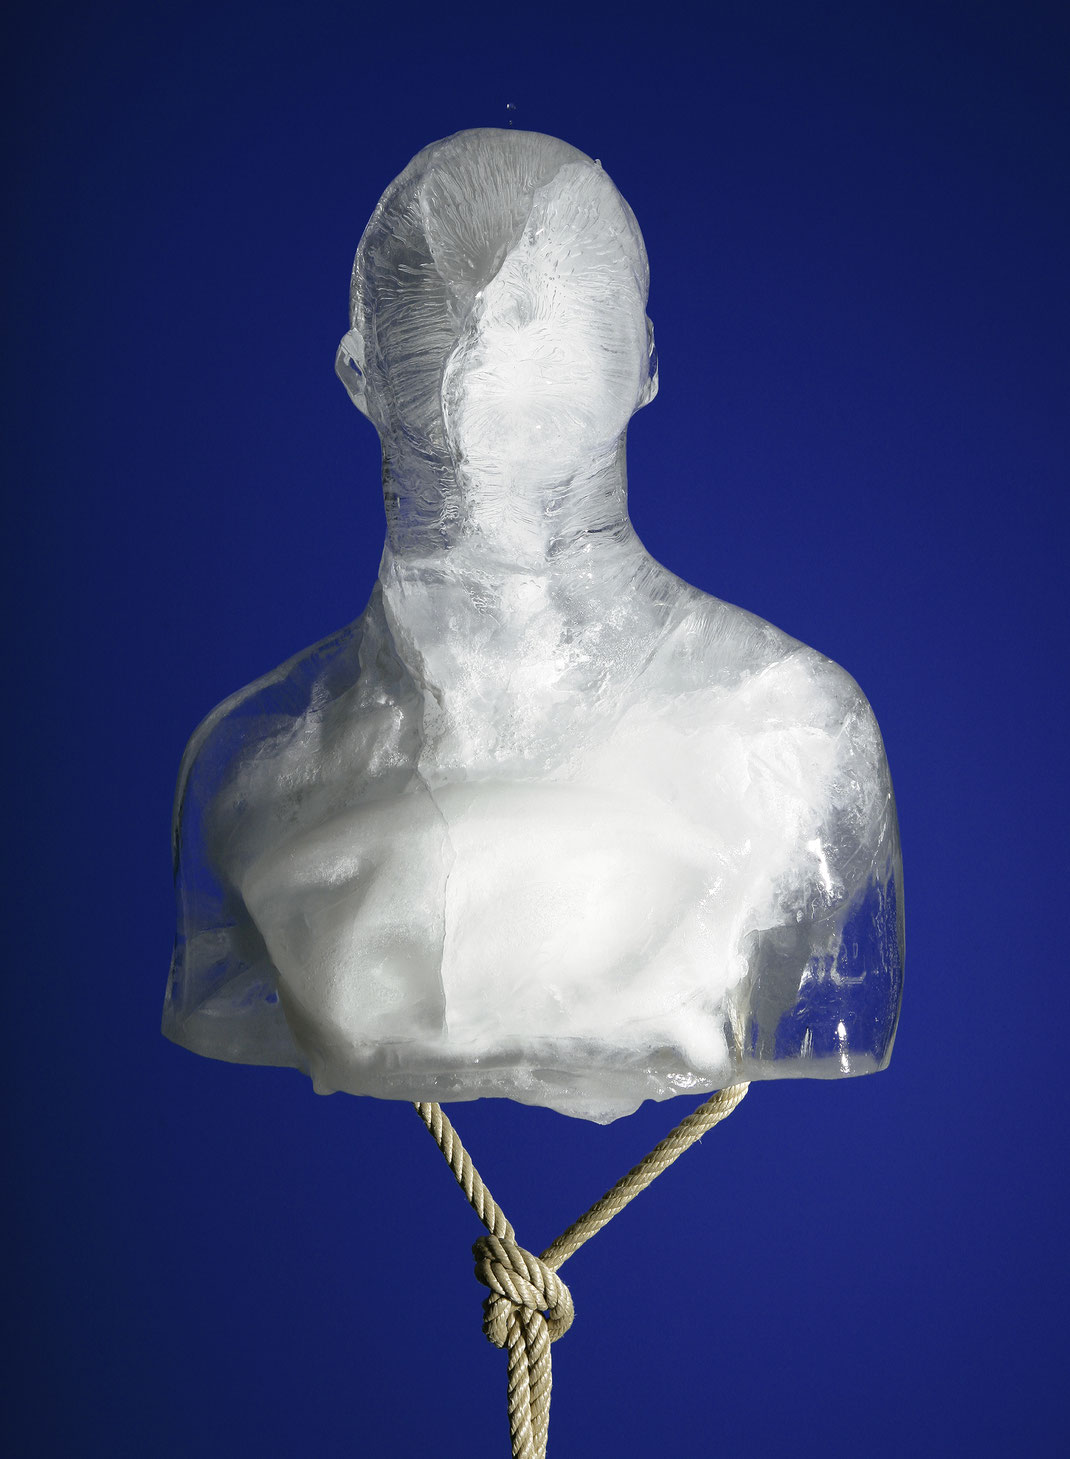 franticek-klossner-sculpture-the-human-body-in-contemporary-art-frozen-self-portrait